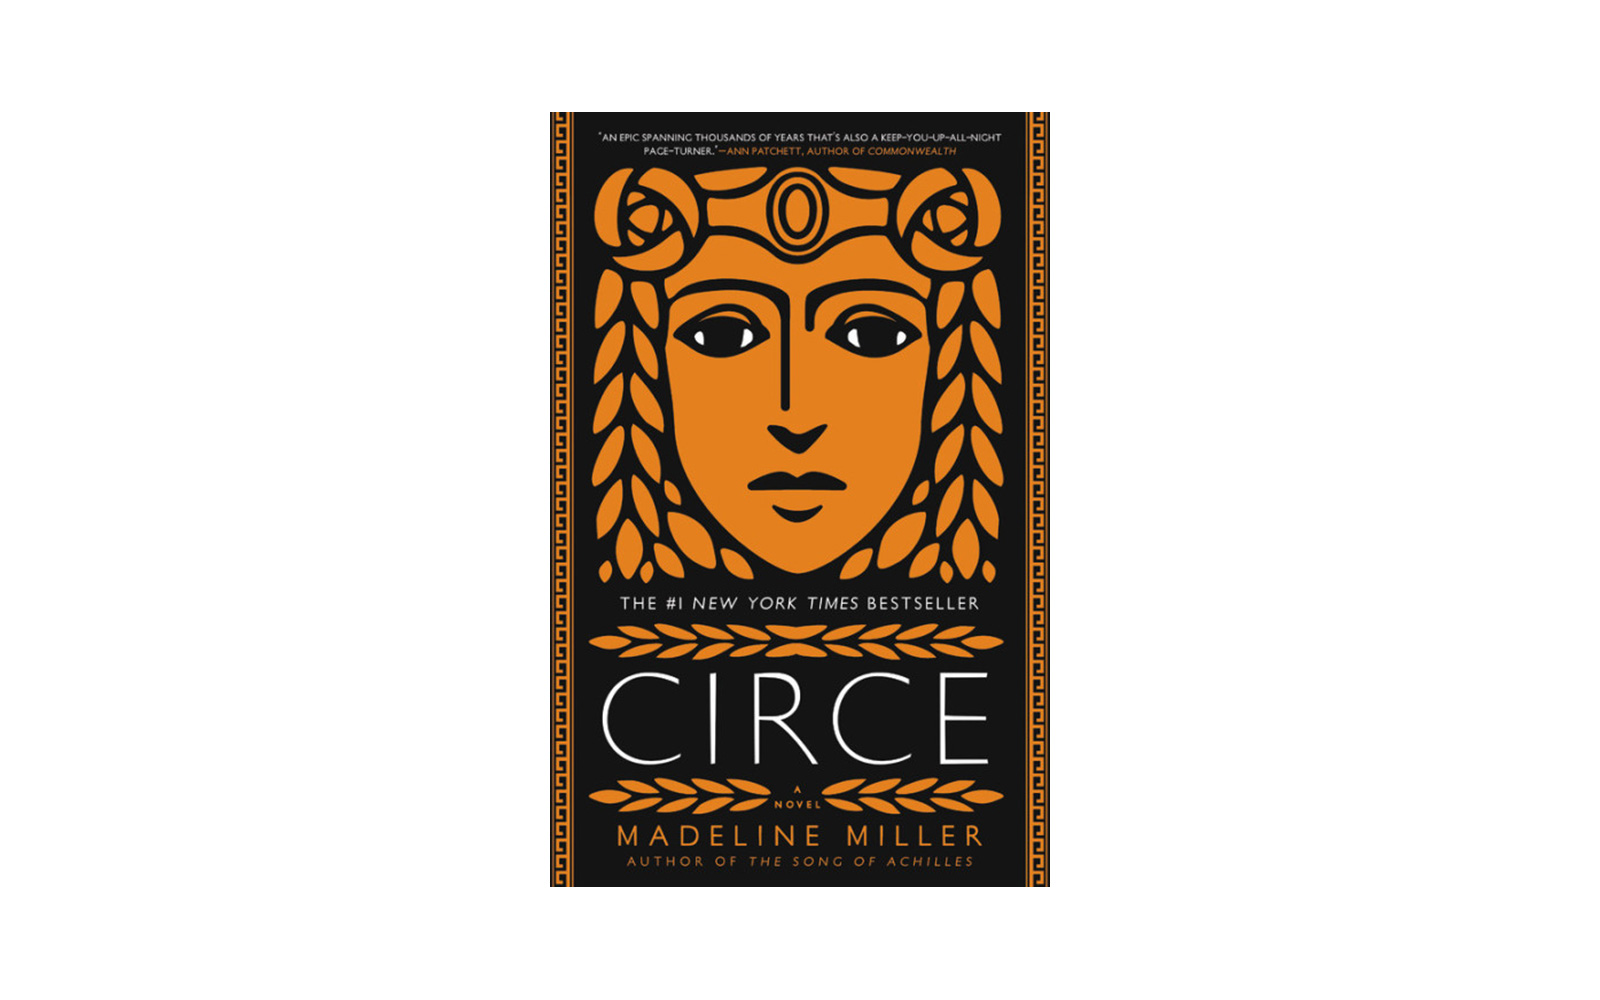 Barnes and Noble Book Sale Circe, by Madeline Miller